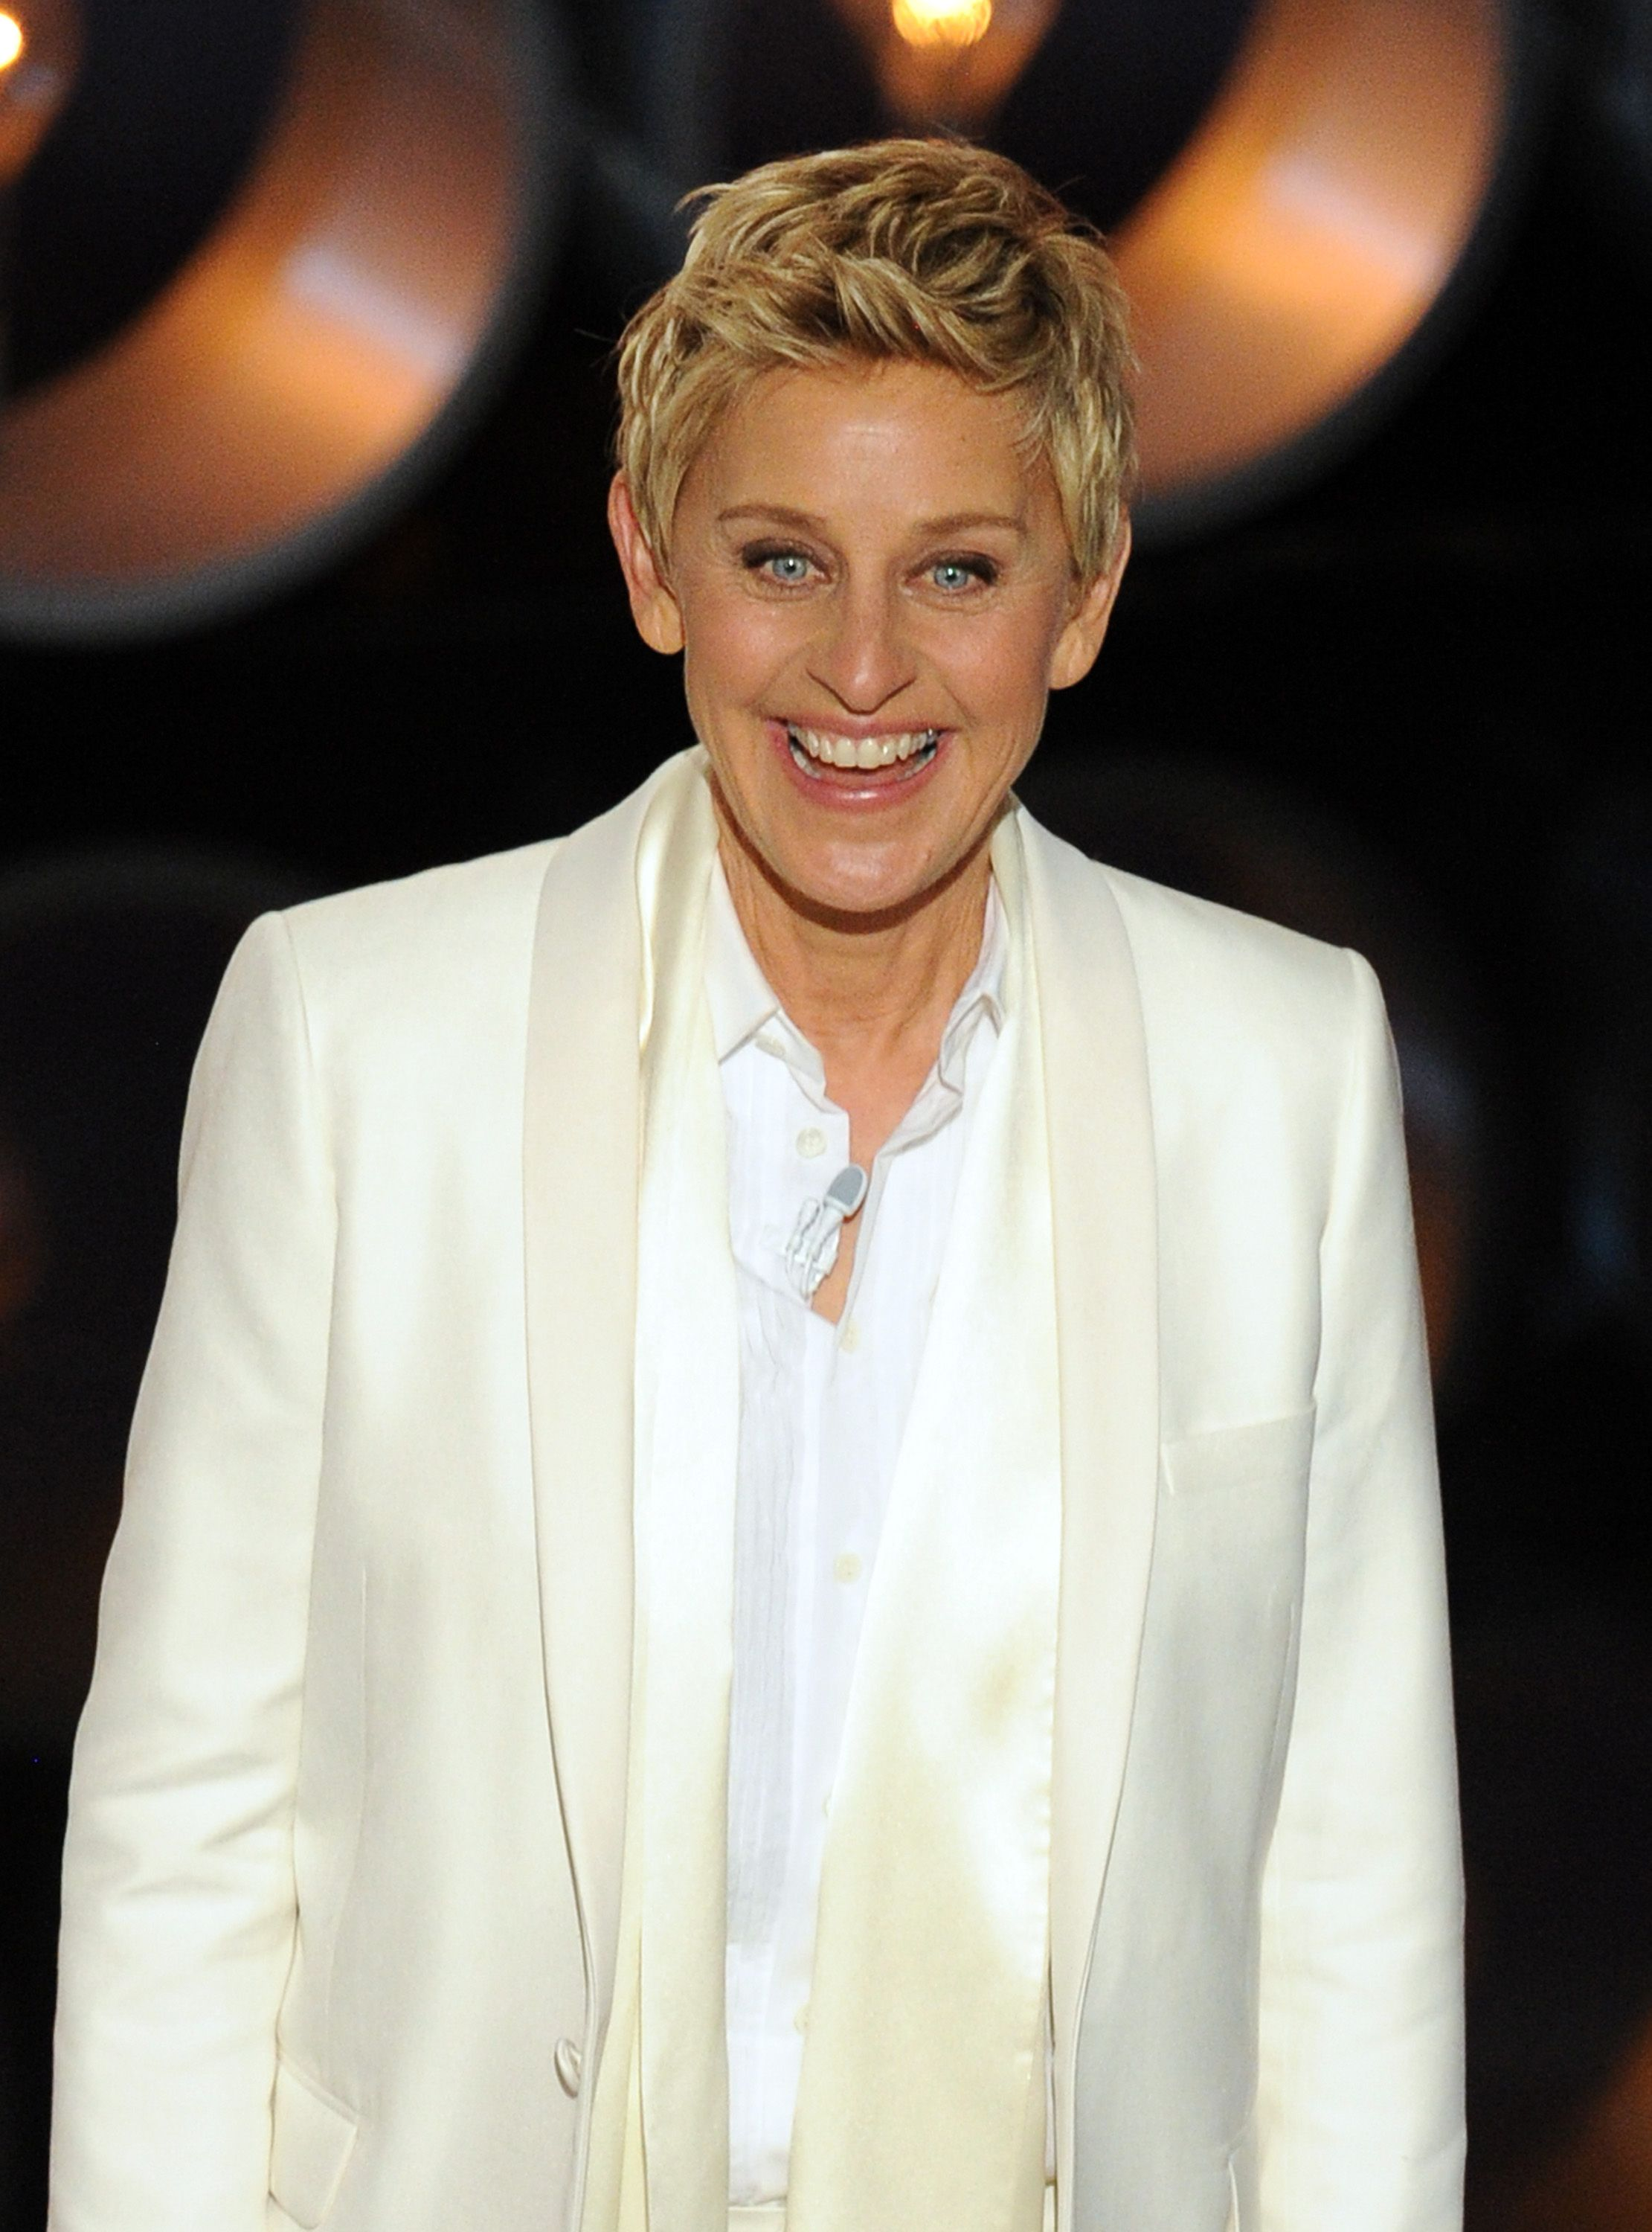 Ellen DeGeneres speaks onstage during the Oscars at the Dolby Theatre on March 2, 2014 in Hollywood, California. | Photo: Getty Images